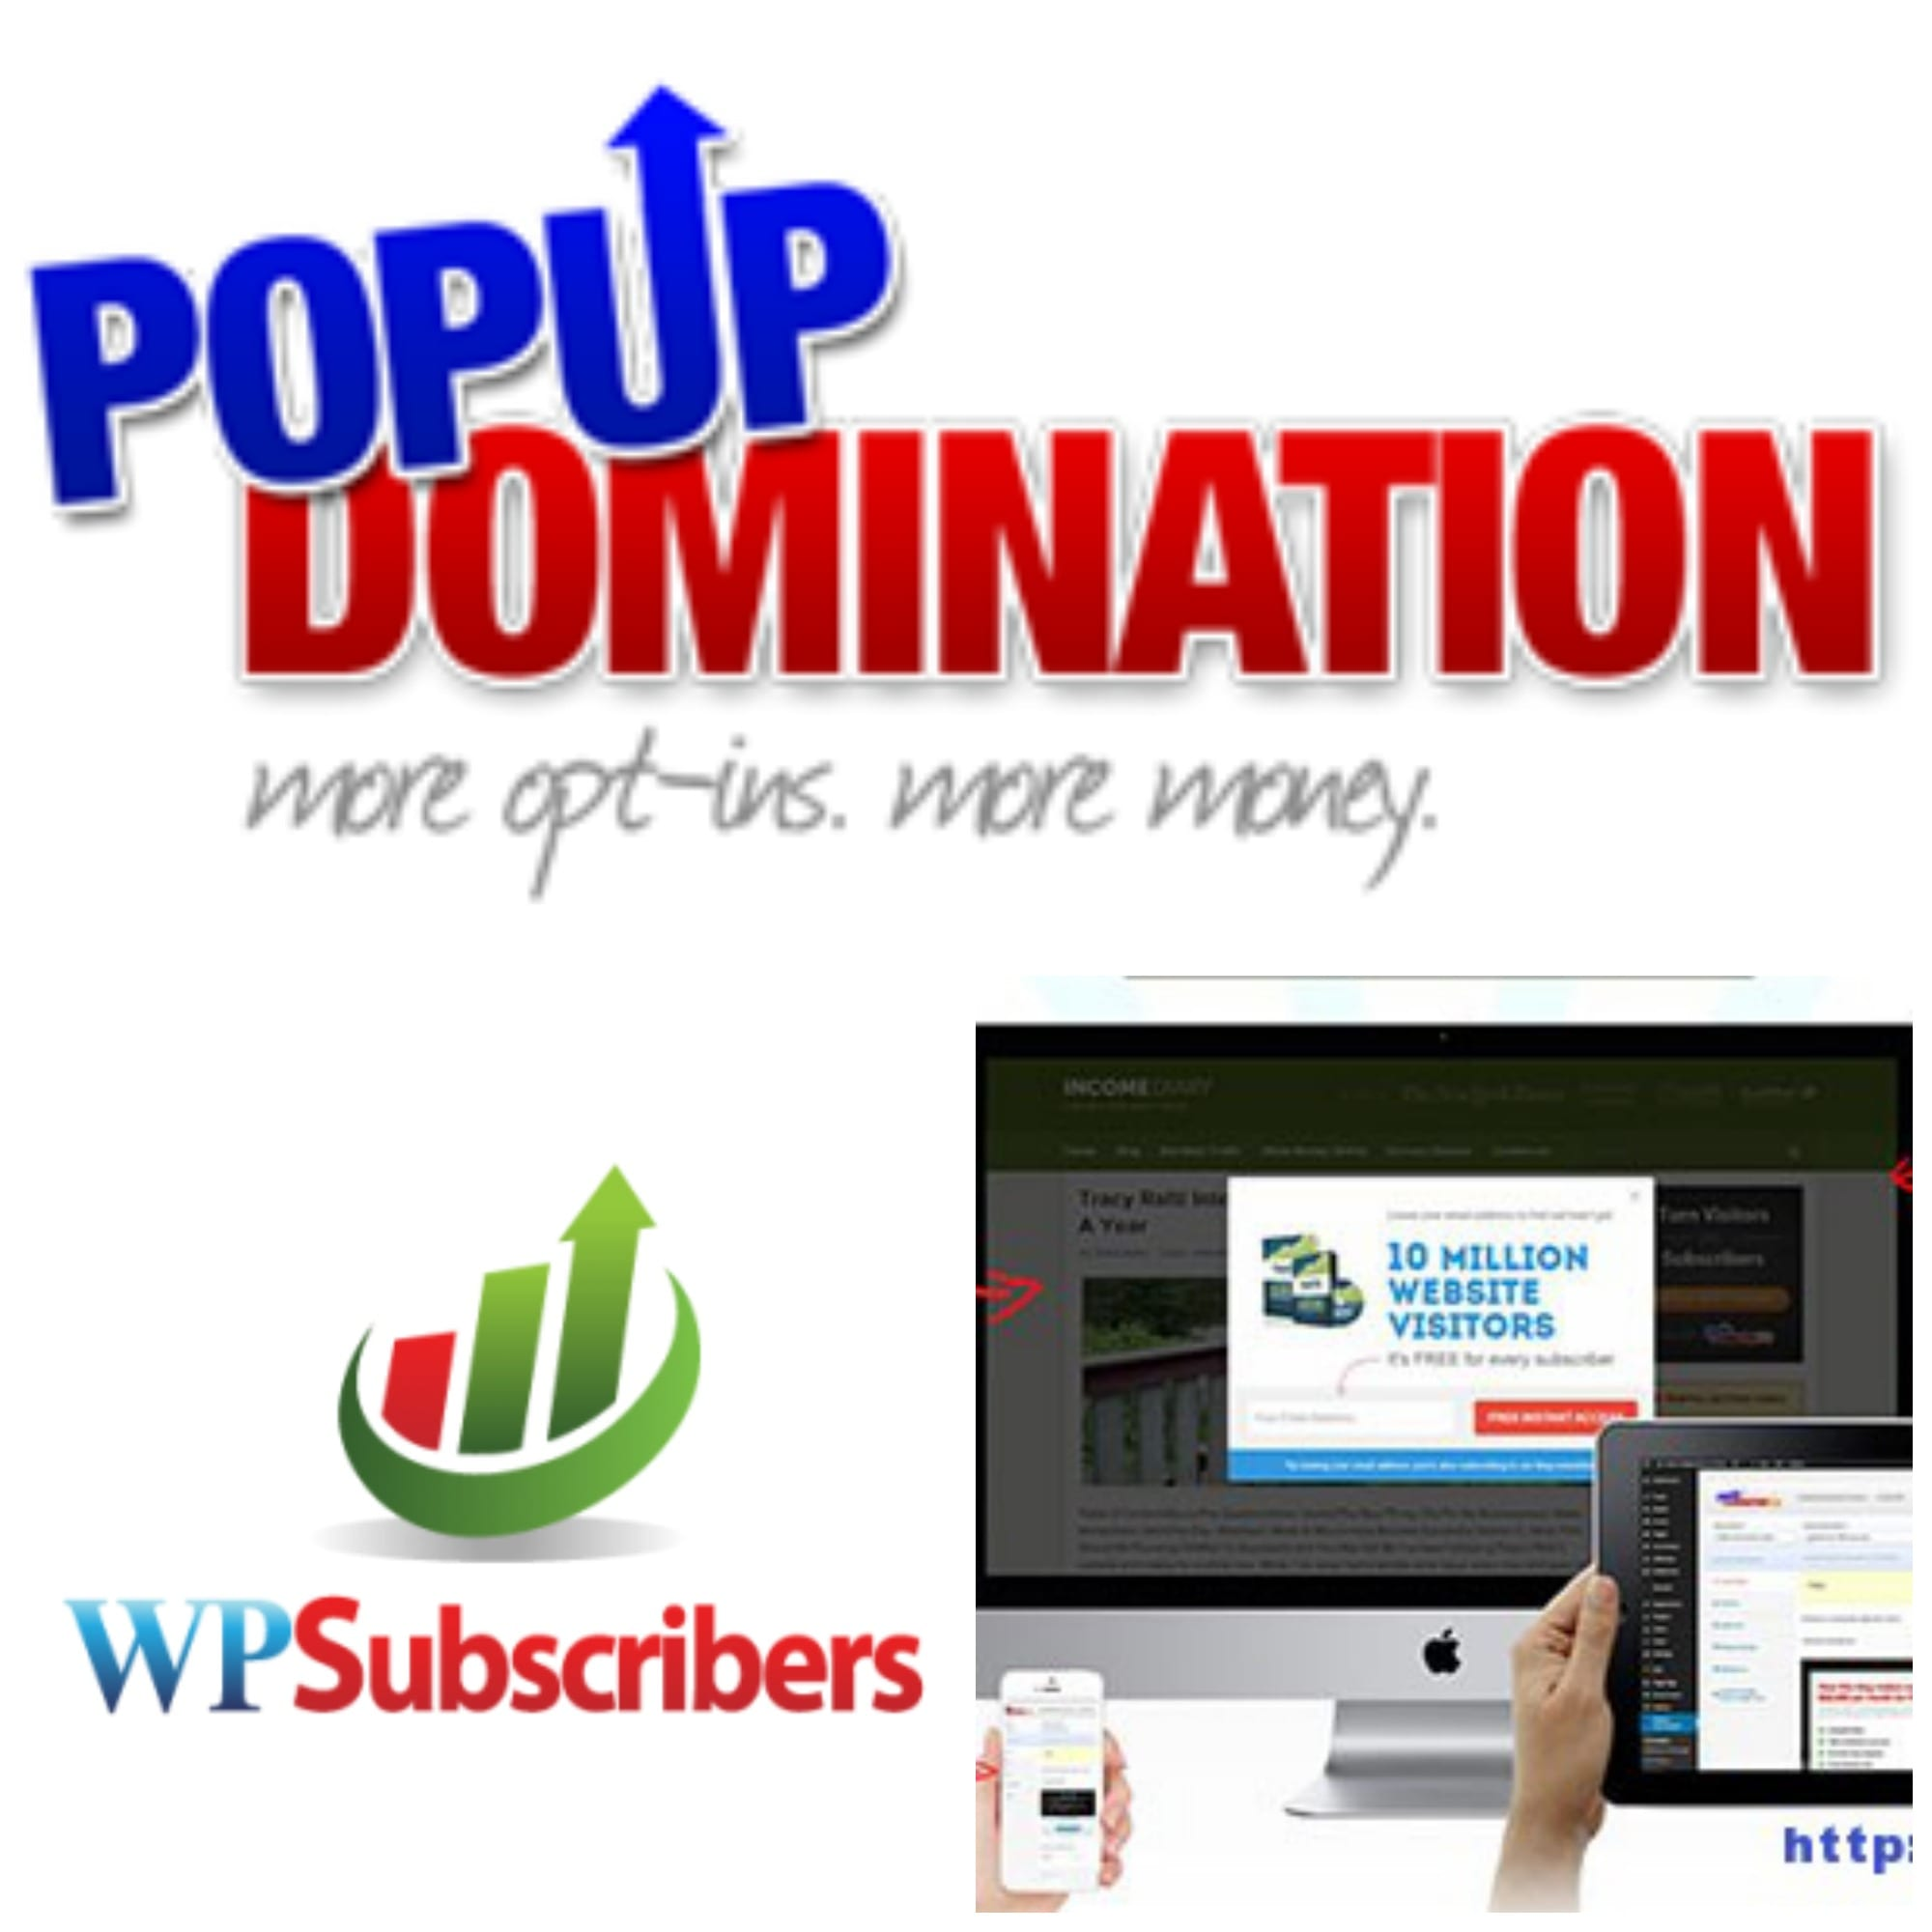 Popup Domination, incrementa tu lista de suscriptores